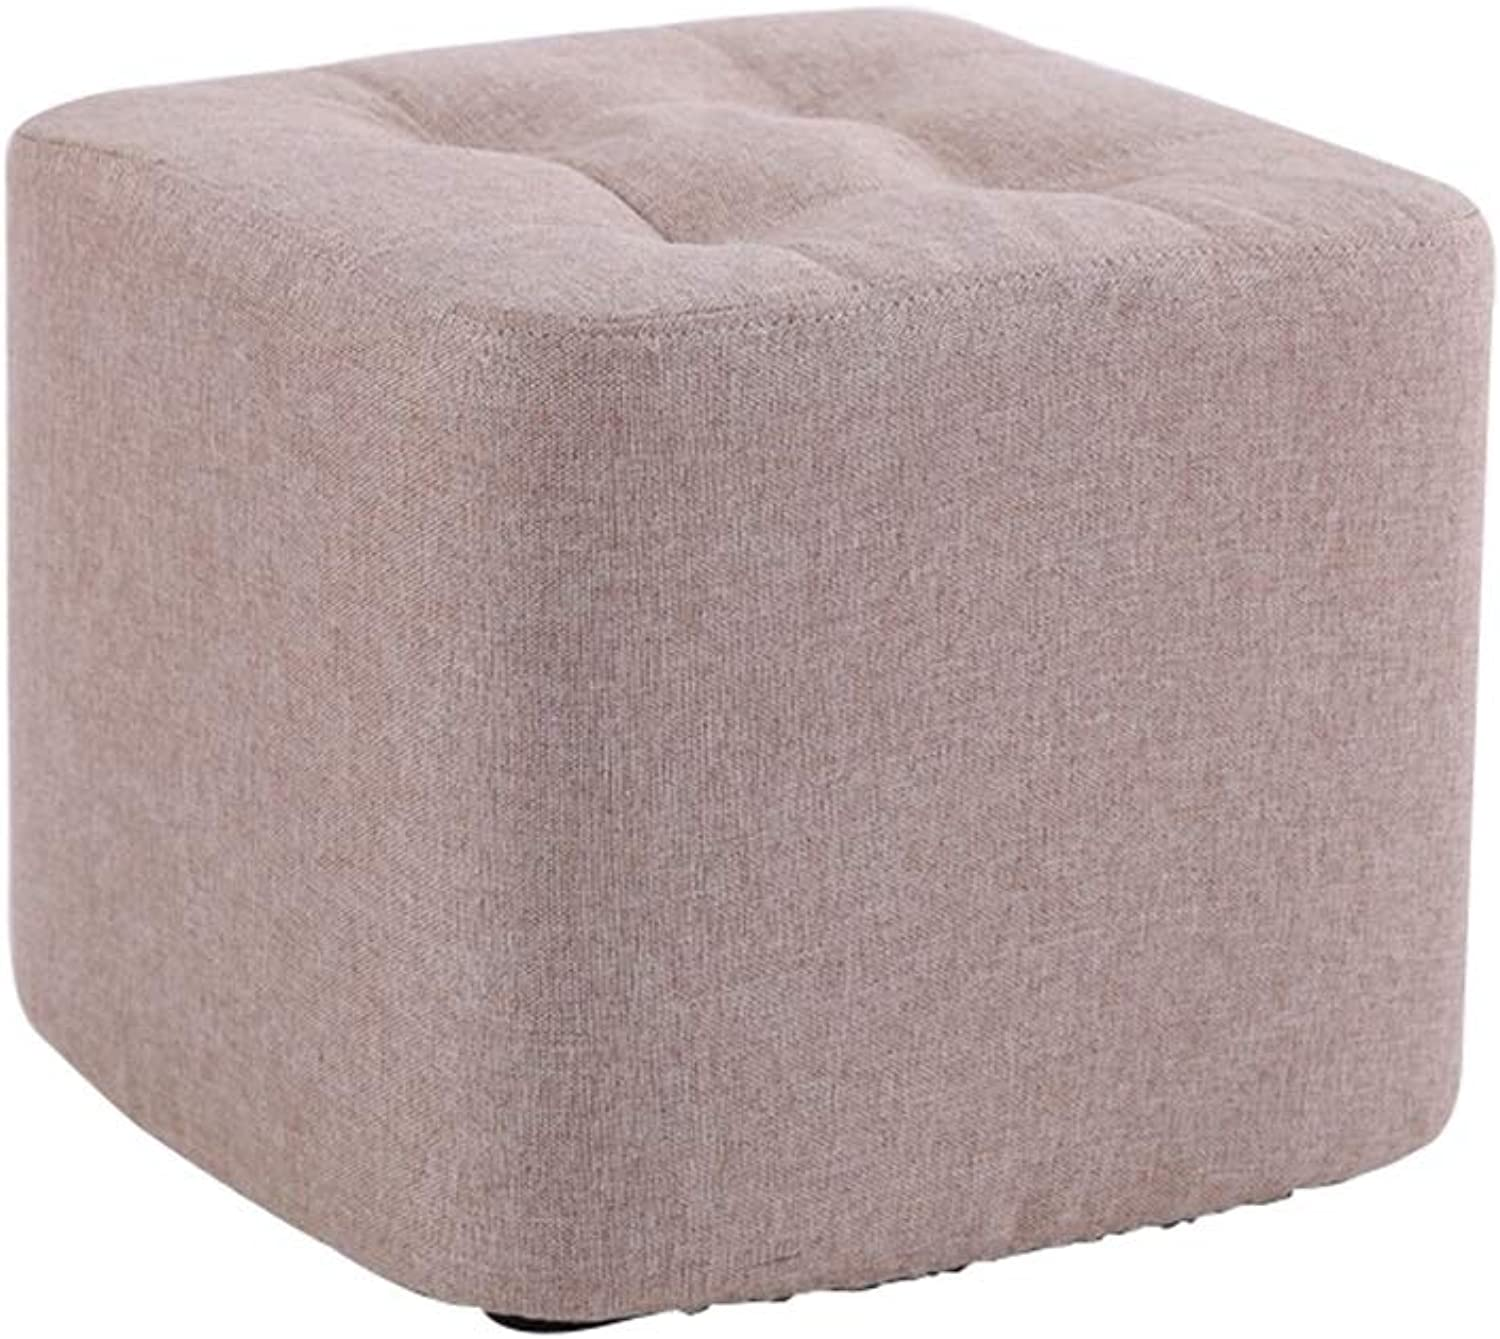 AGLZWY Footstool Sofa Stool Multipurpose Cloth Breathable Non-Slip Portable Square Creative Living Room Change shoes Bench Tea Table ,Multiple Colour (color   A, Size   29X19CM)